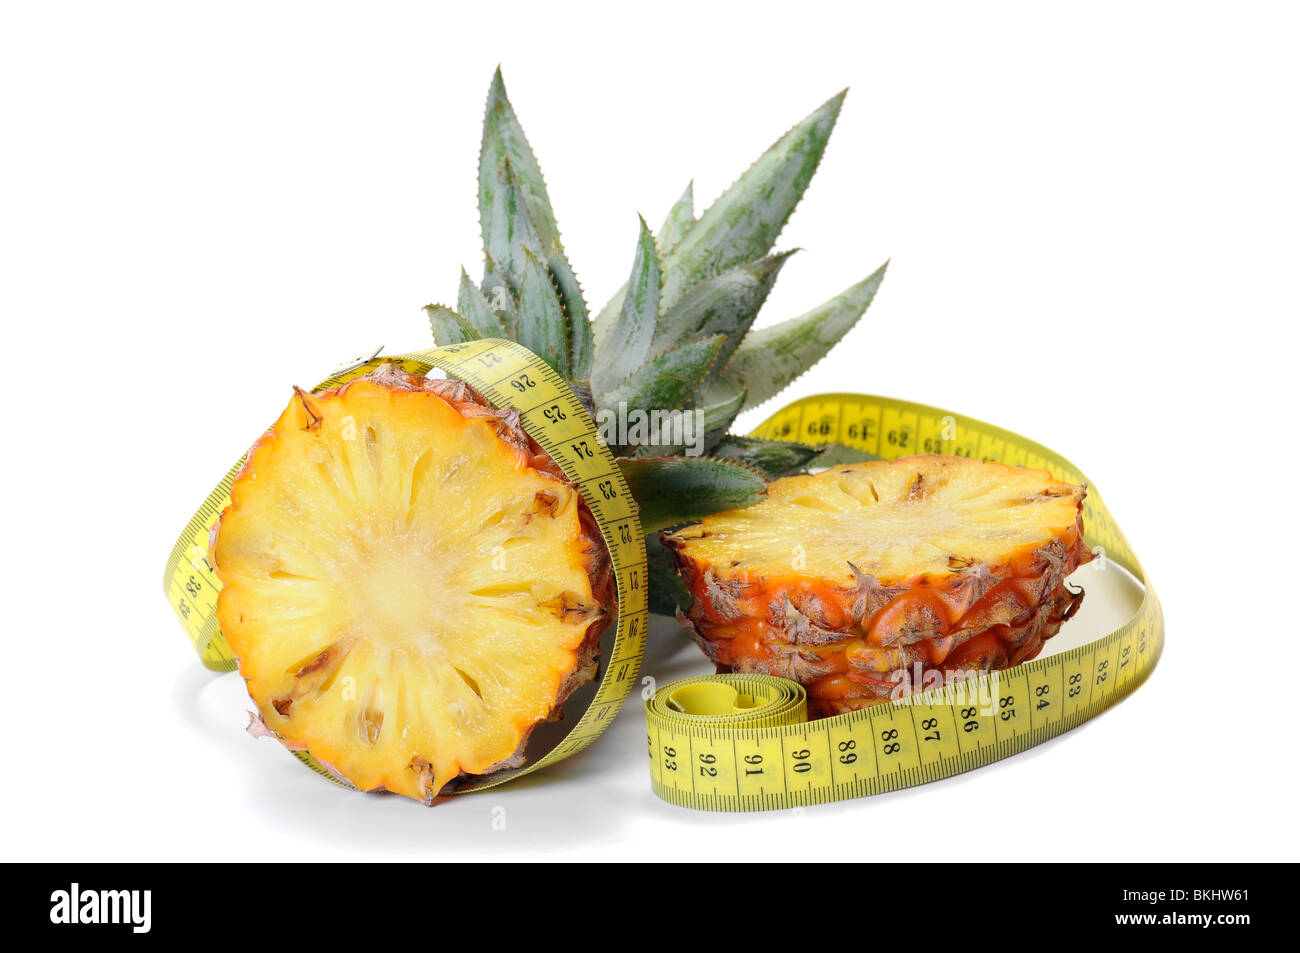 Ananas, pineapple measured the meter, health concept Stock Photo